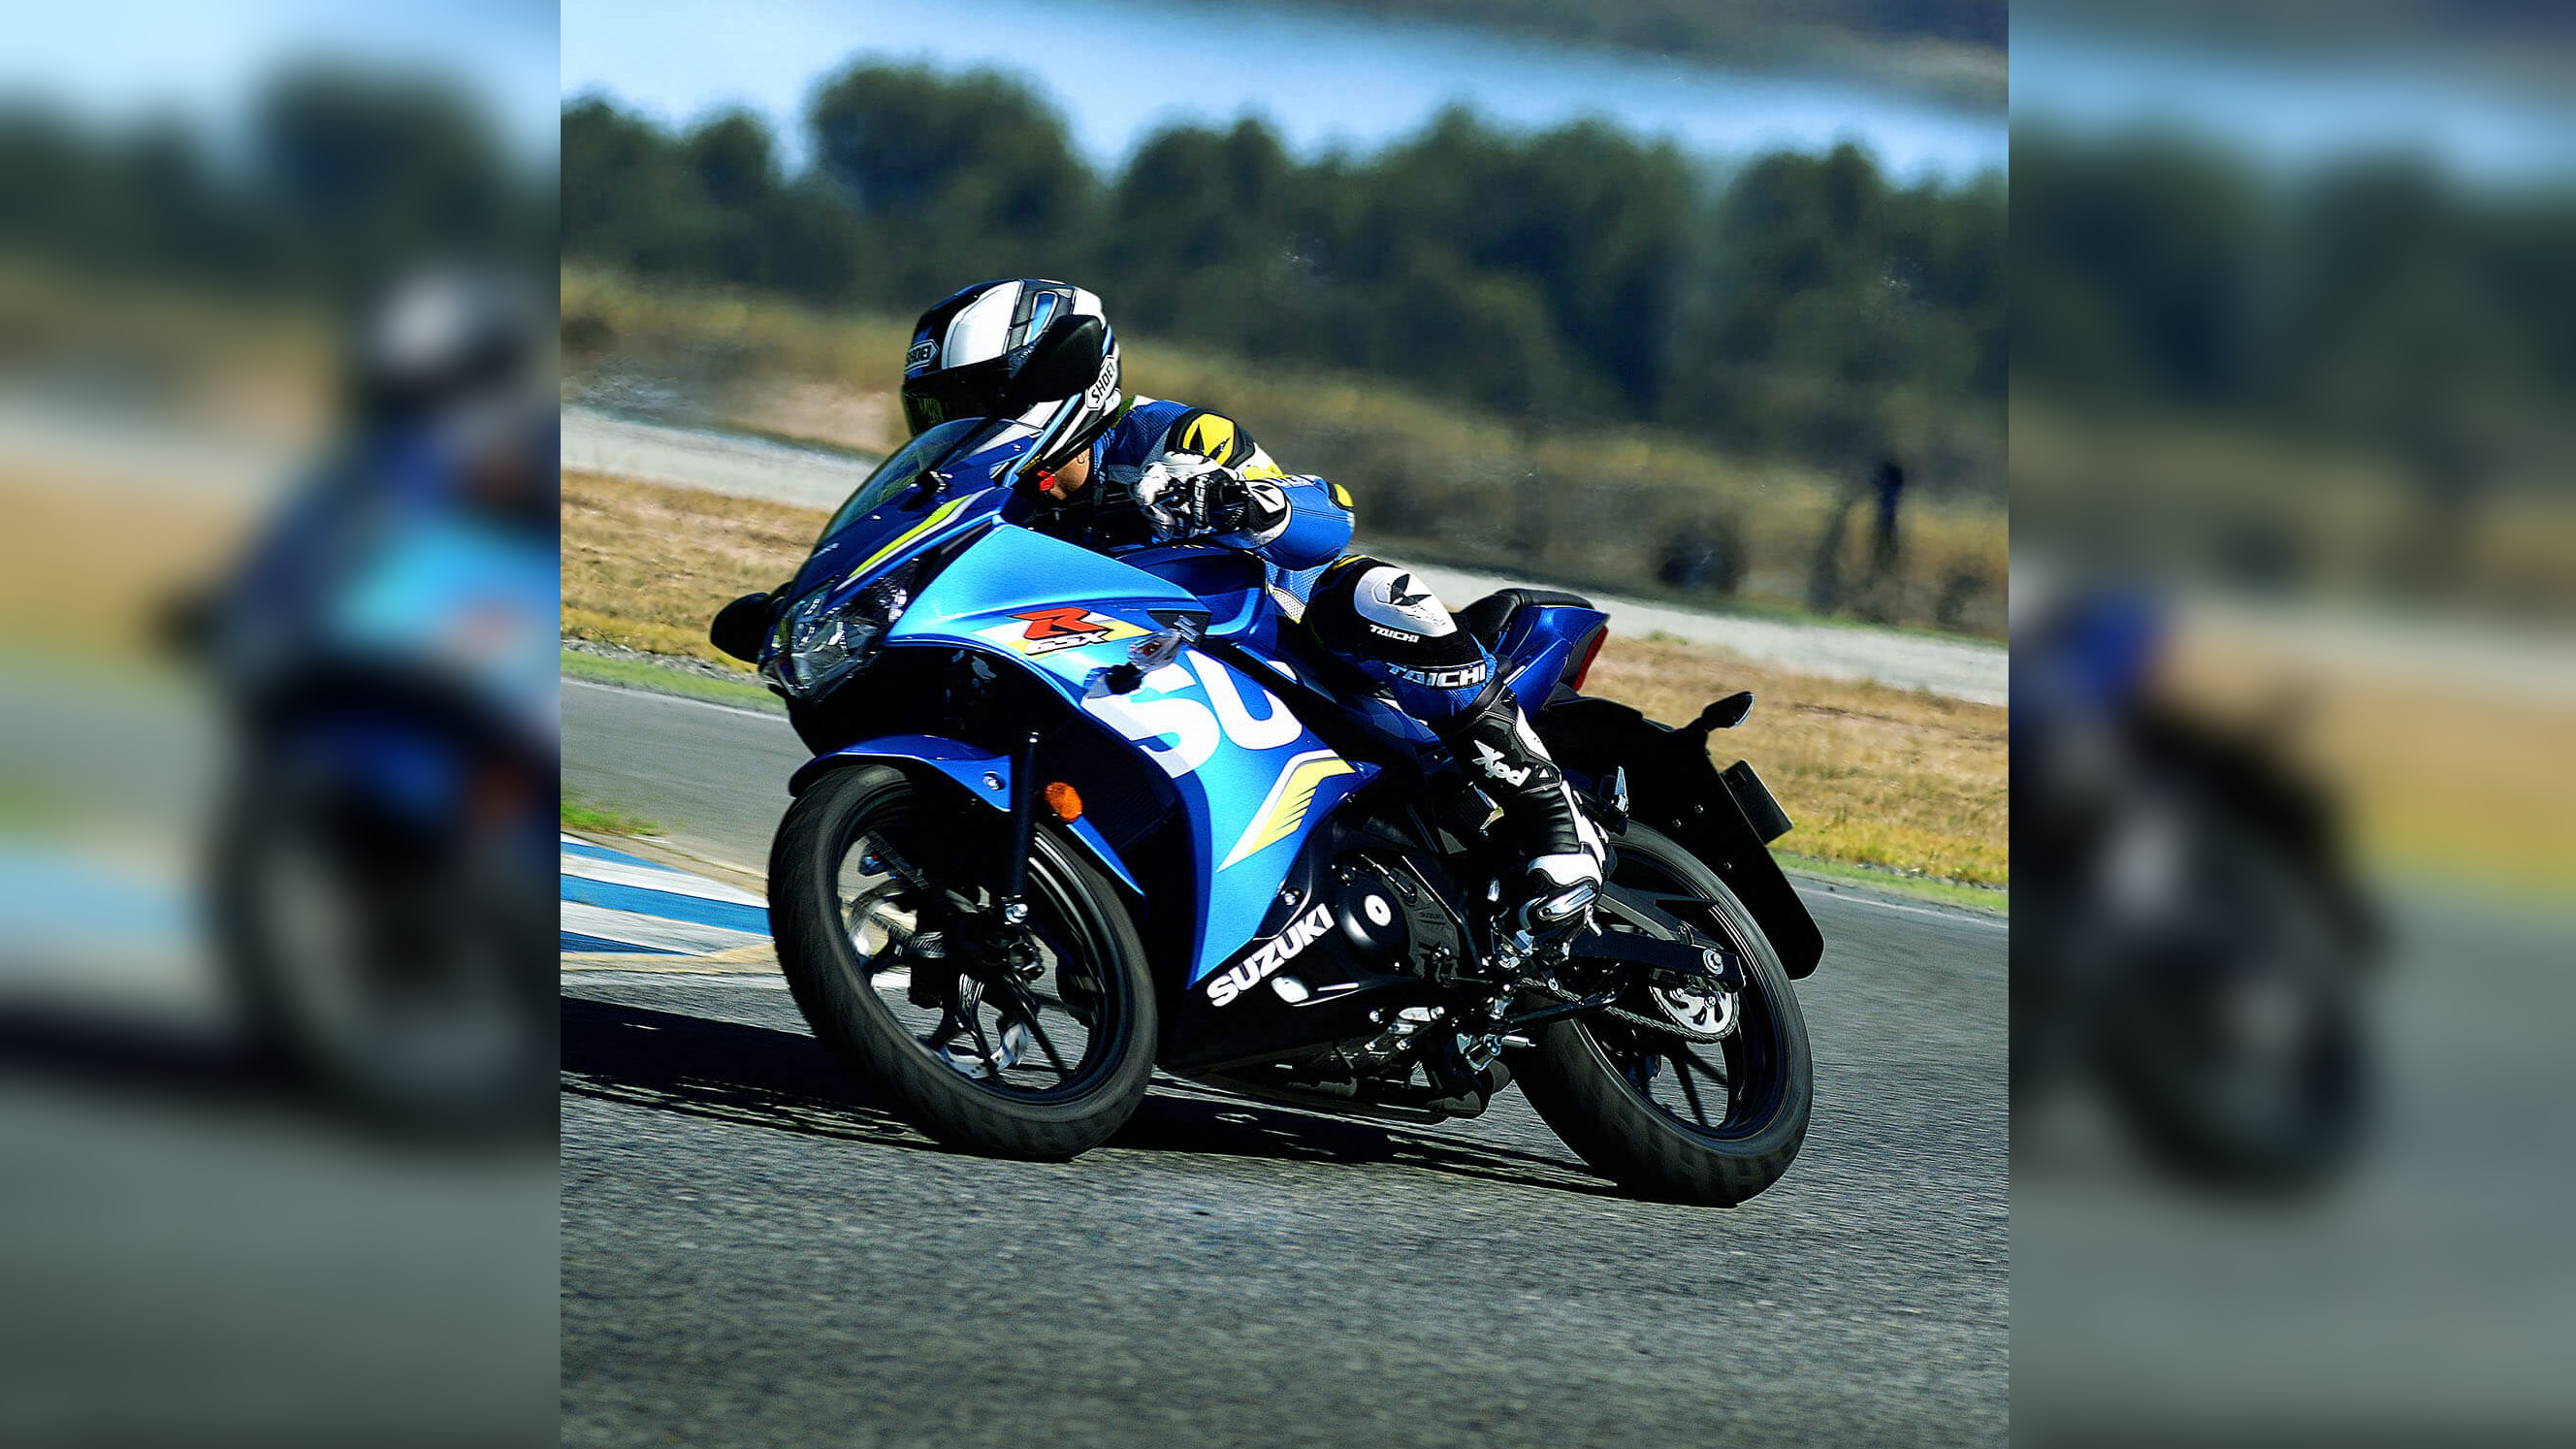 2018 Suzuki Gsx R125 Review Top Speed